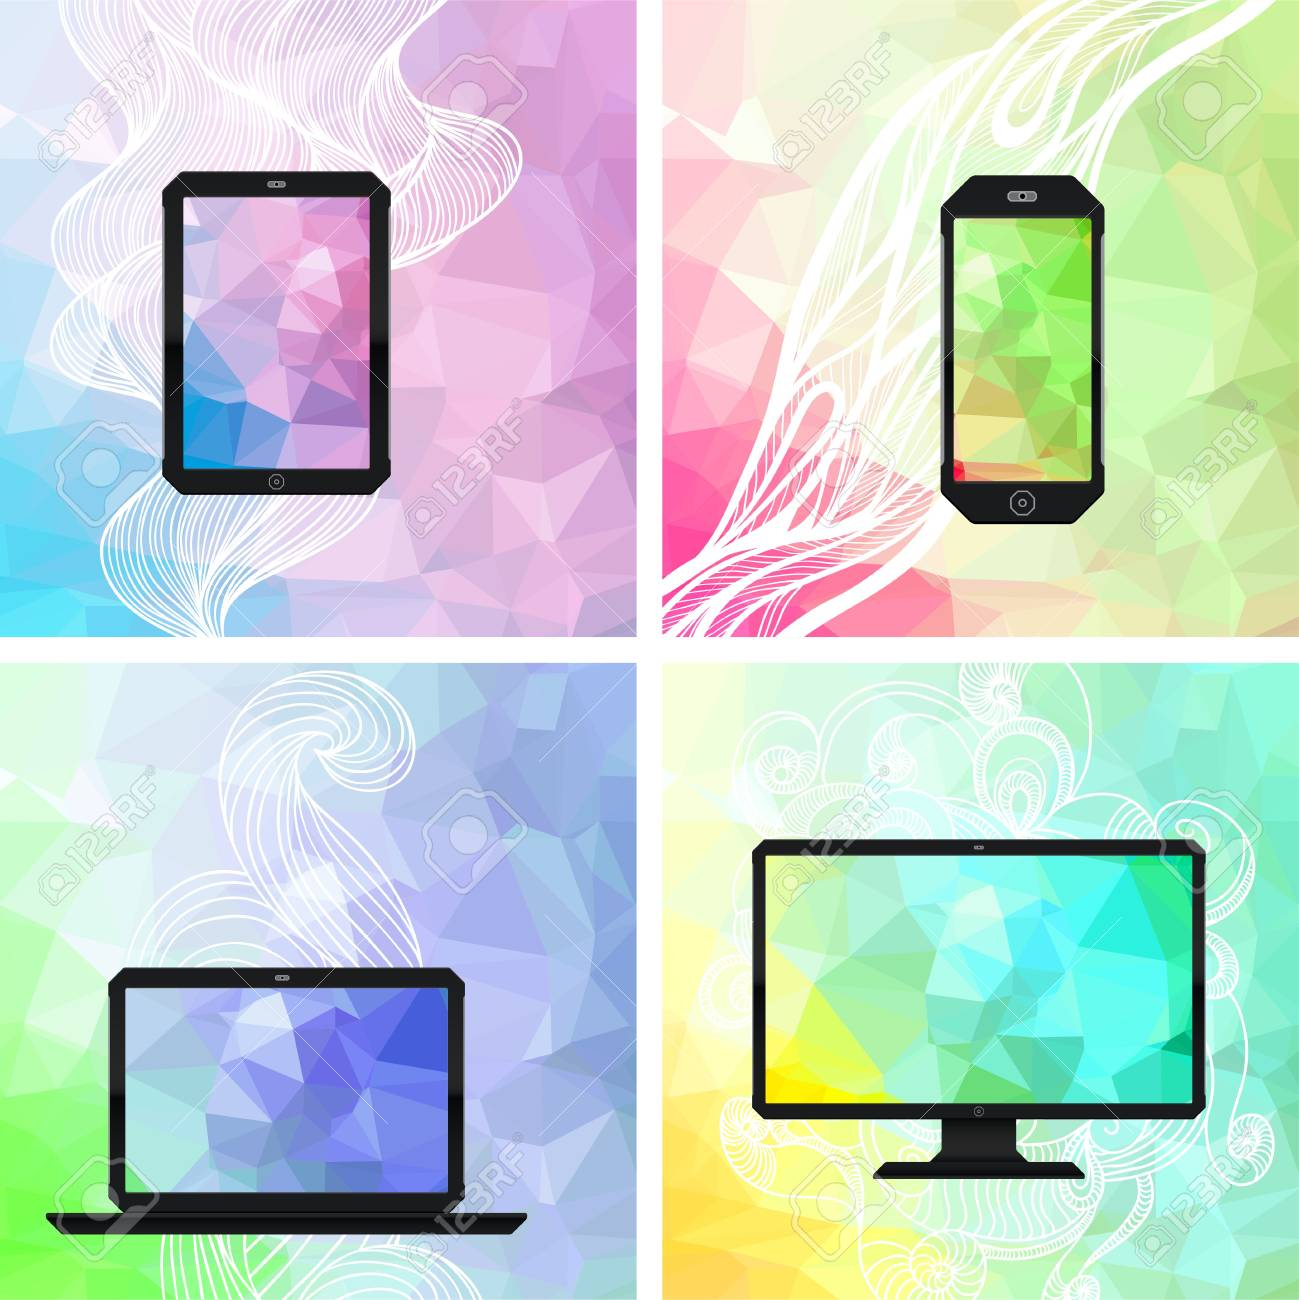 Electronic devices backgrounds. Stock Vector - 20481890